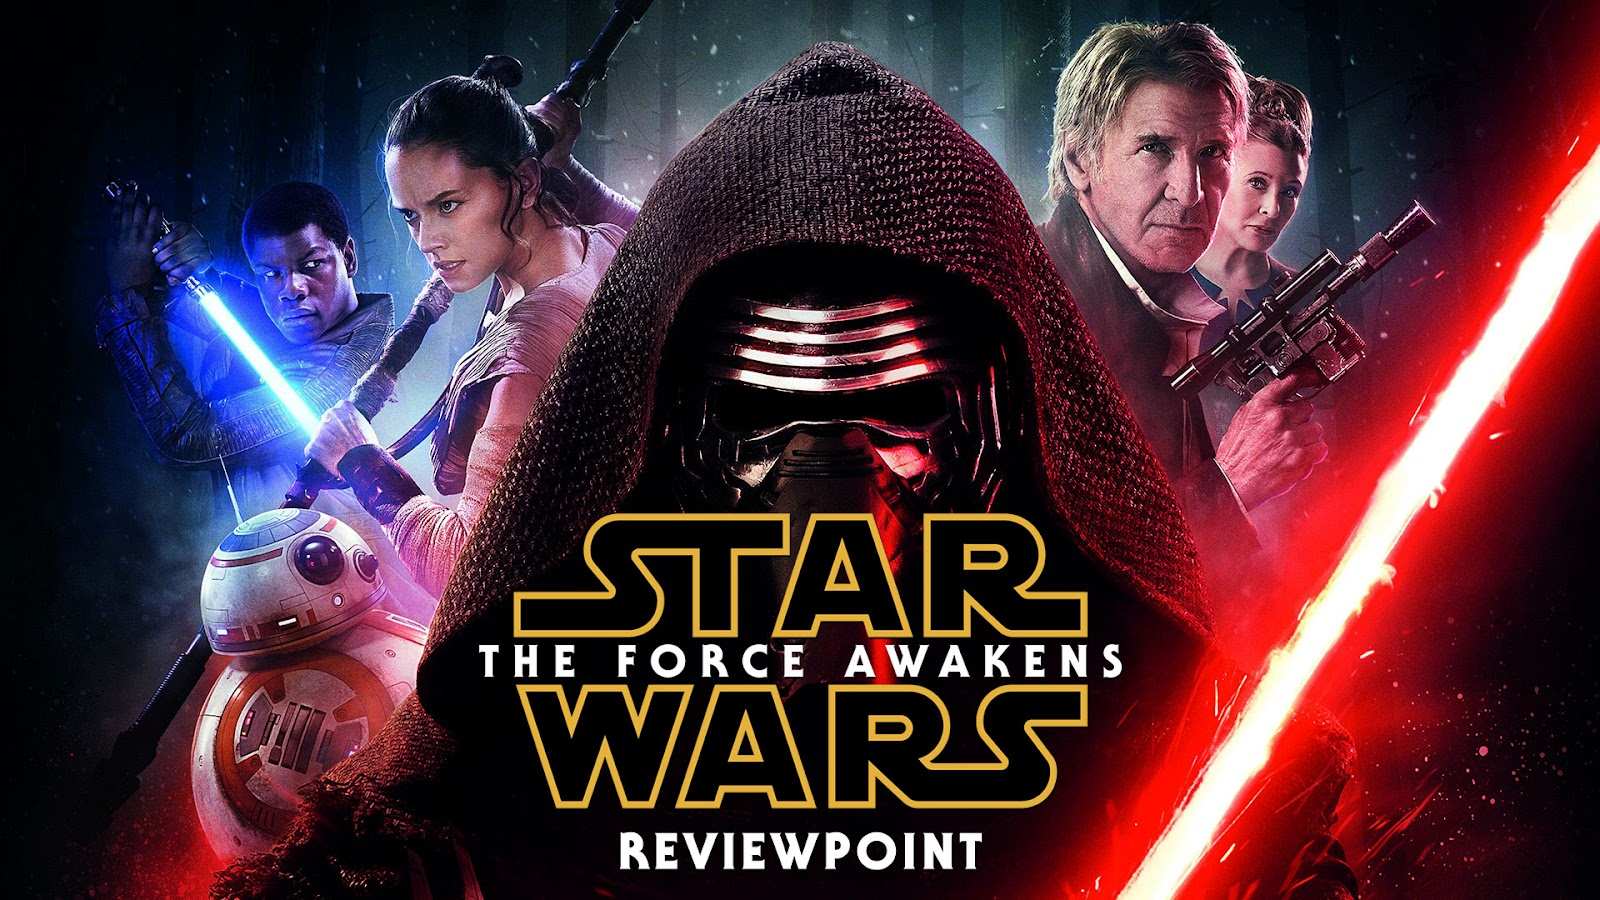 movie review Star Wars: Episode VII - The Force Awakens podcast